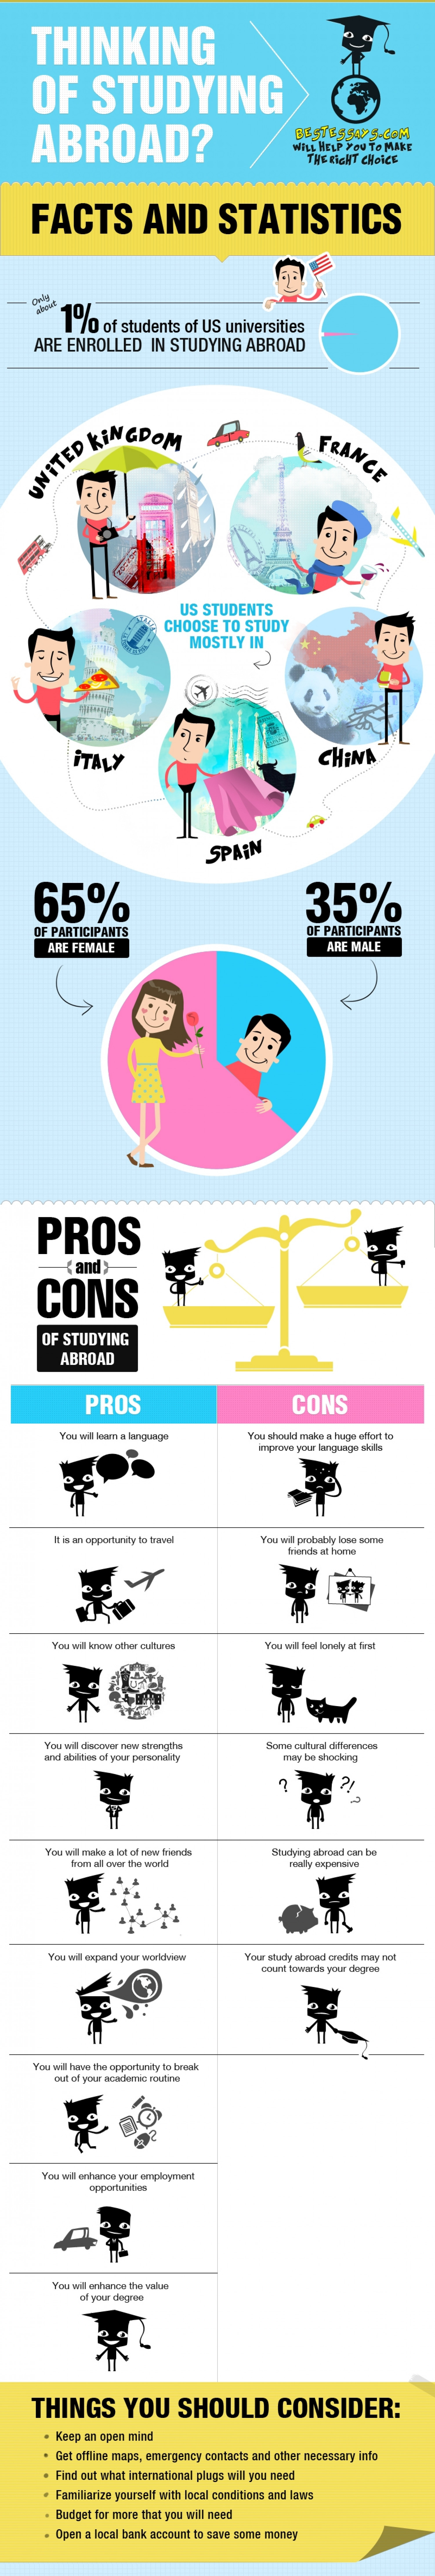 Thinking of studying abroad? Infographic